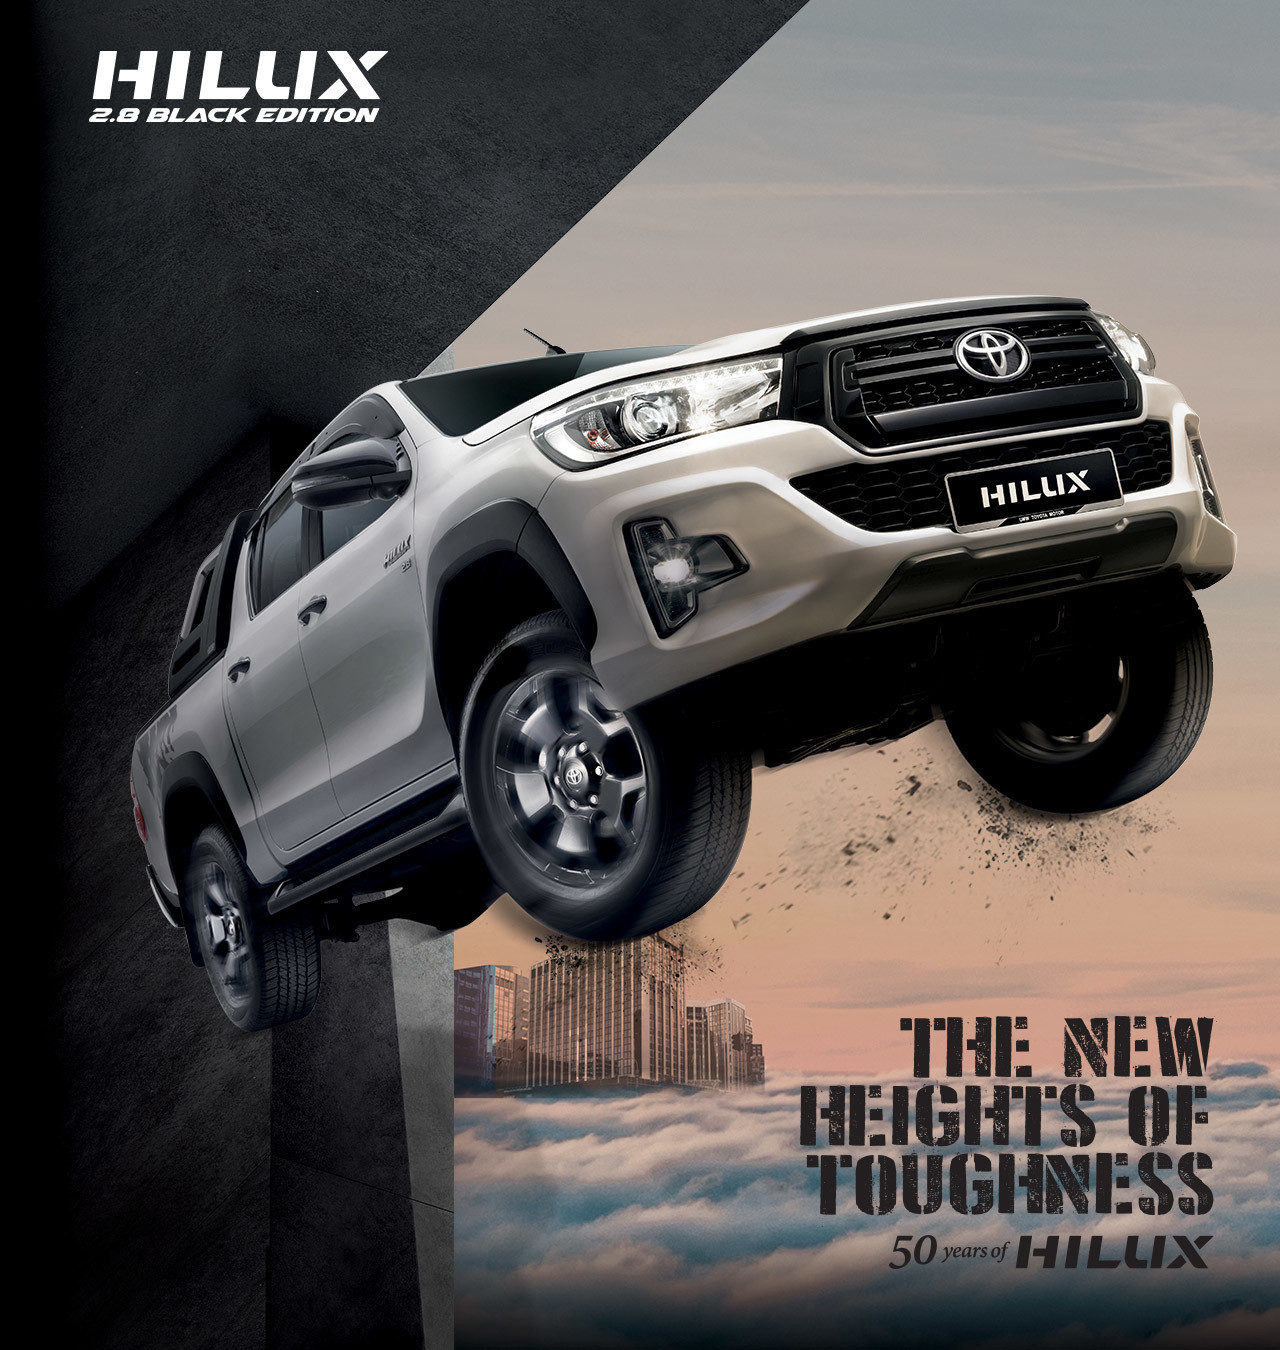 Tremendous Toyota Malaysia Hilux Gmtry Best Dining Table And Chair Ideas Images Gmtryco